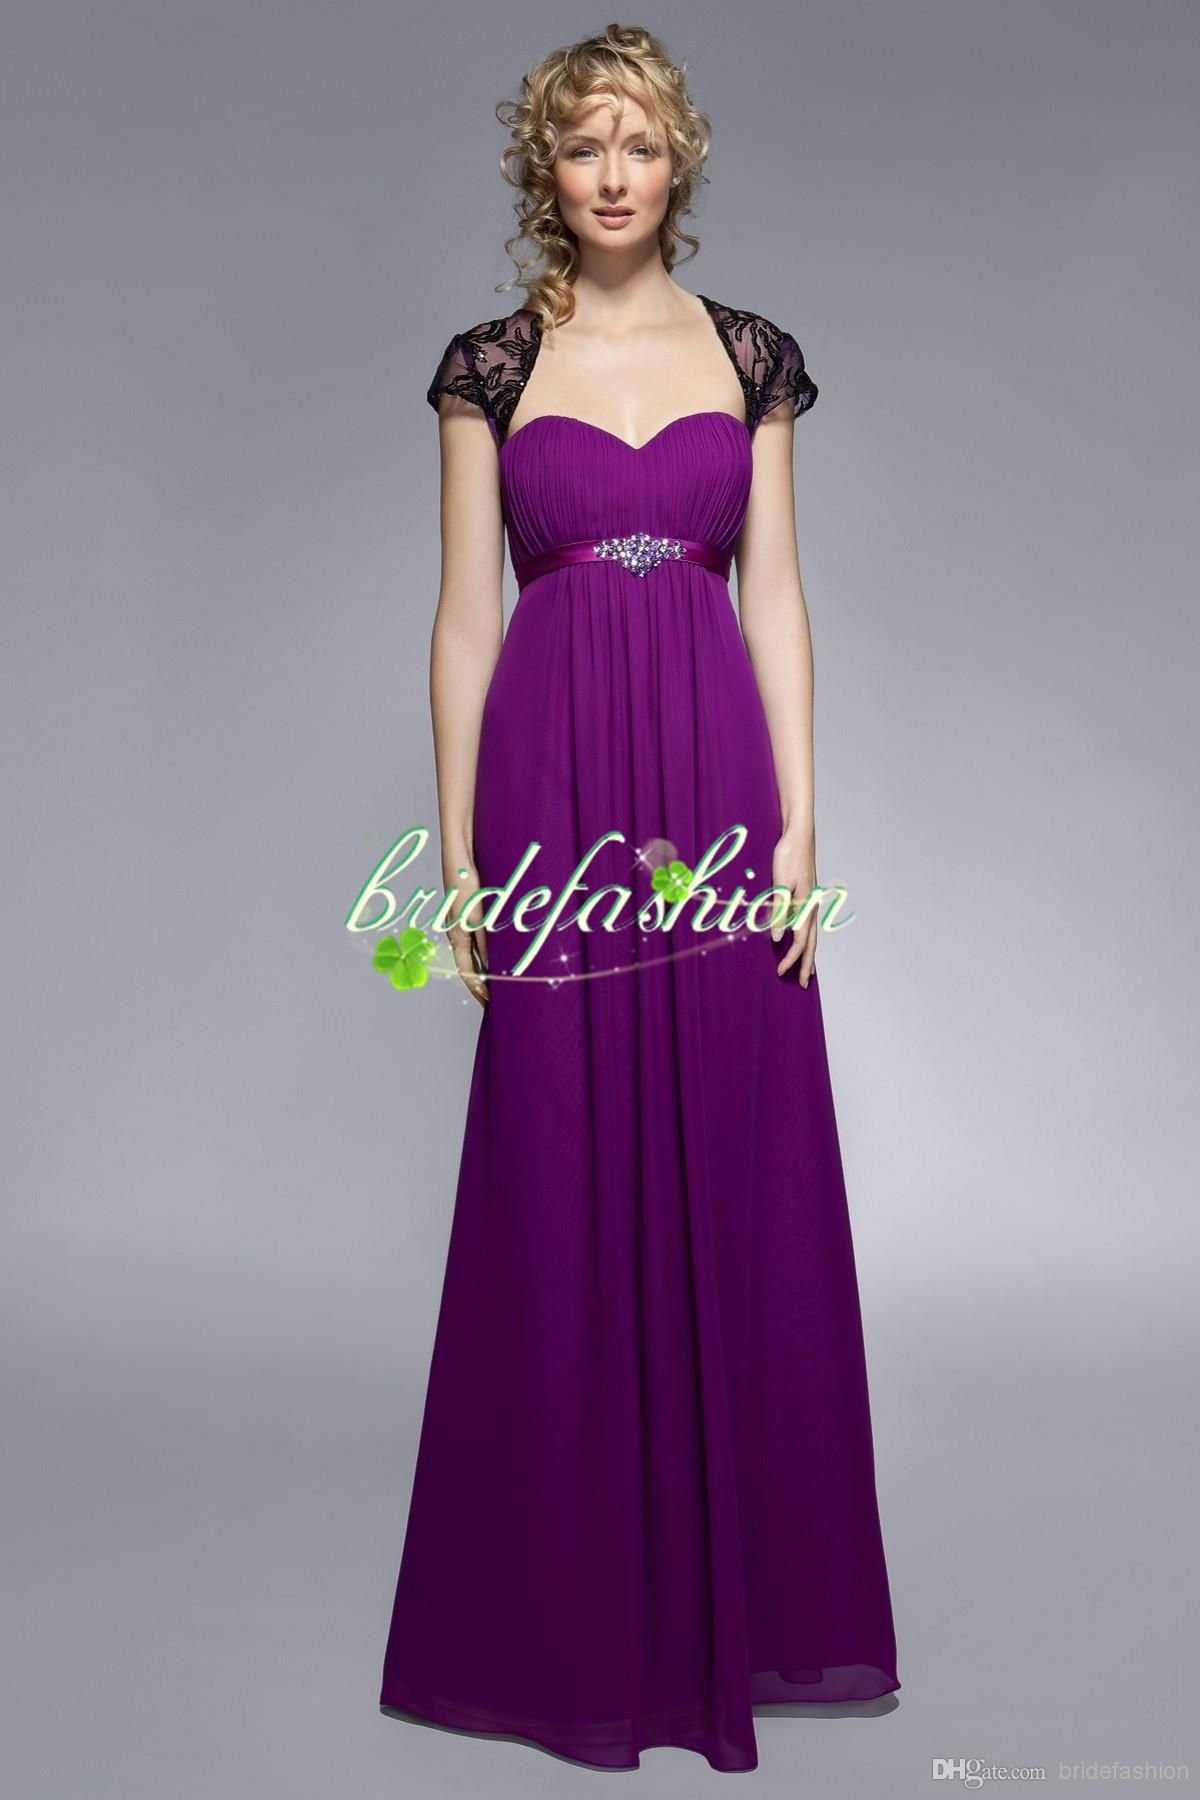 Wholesale Maid of Honor Dress - Buy 2014 New Arrive Elegant Purple ...